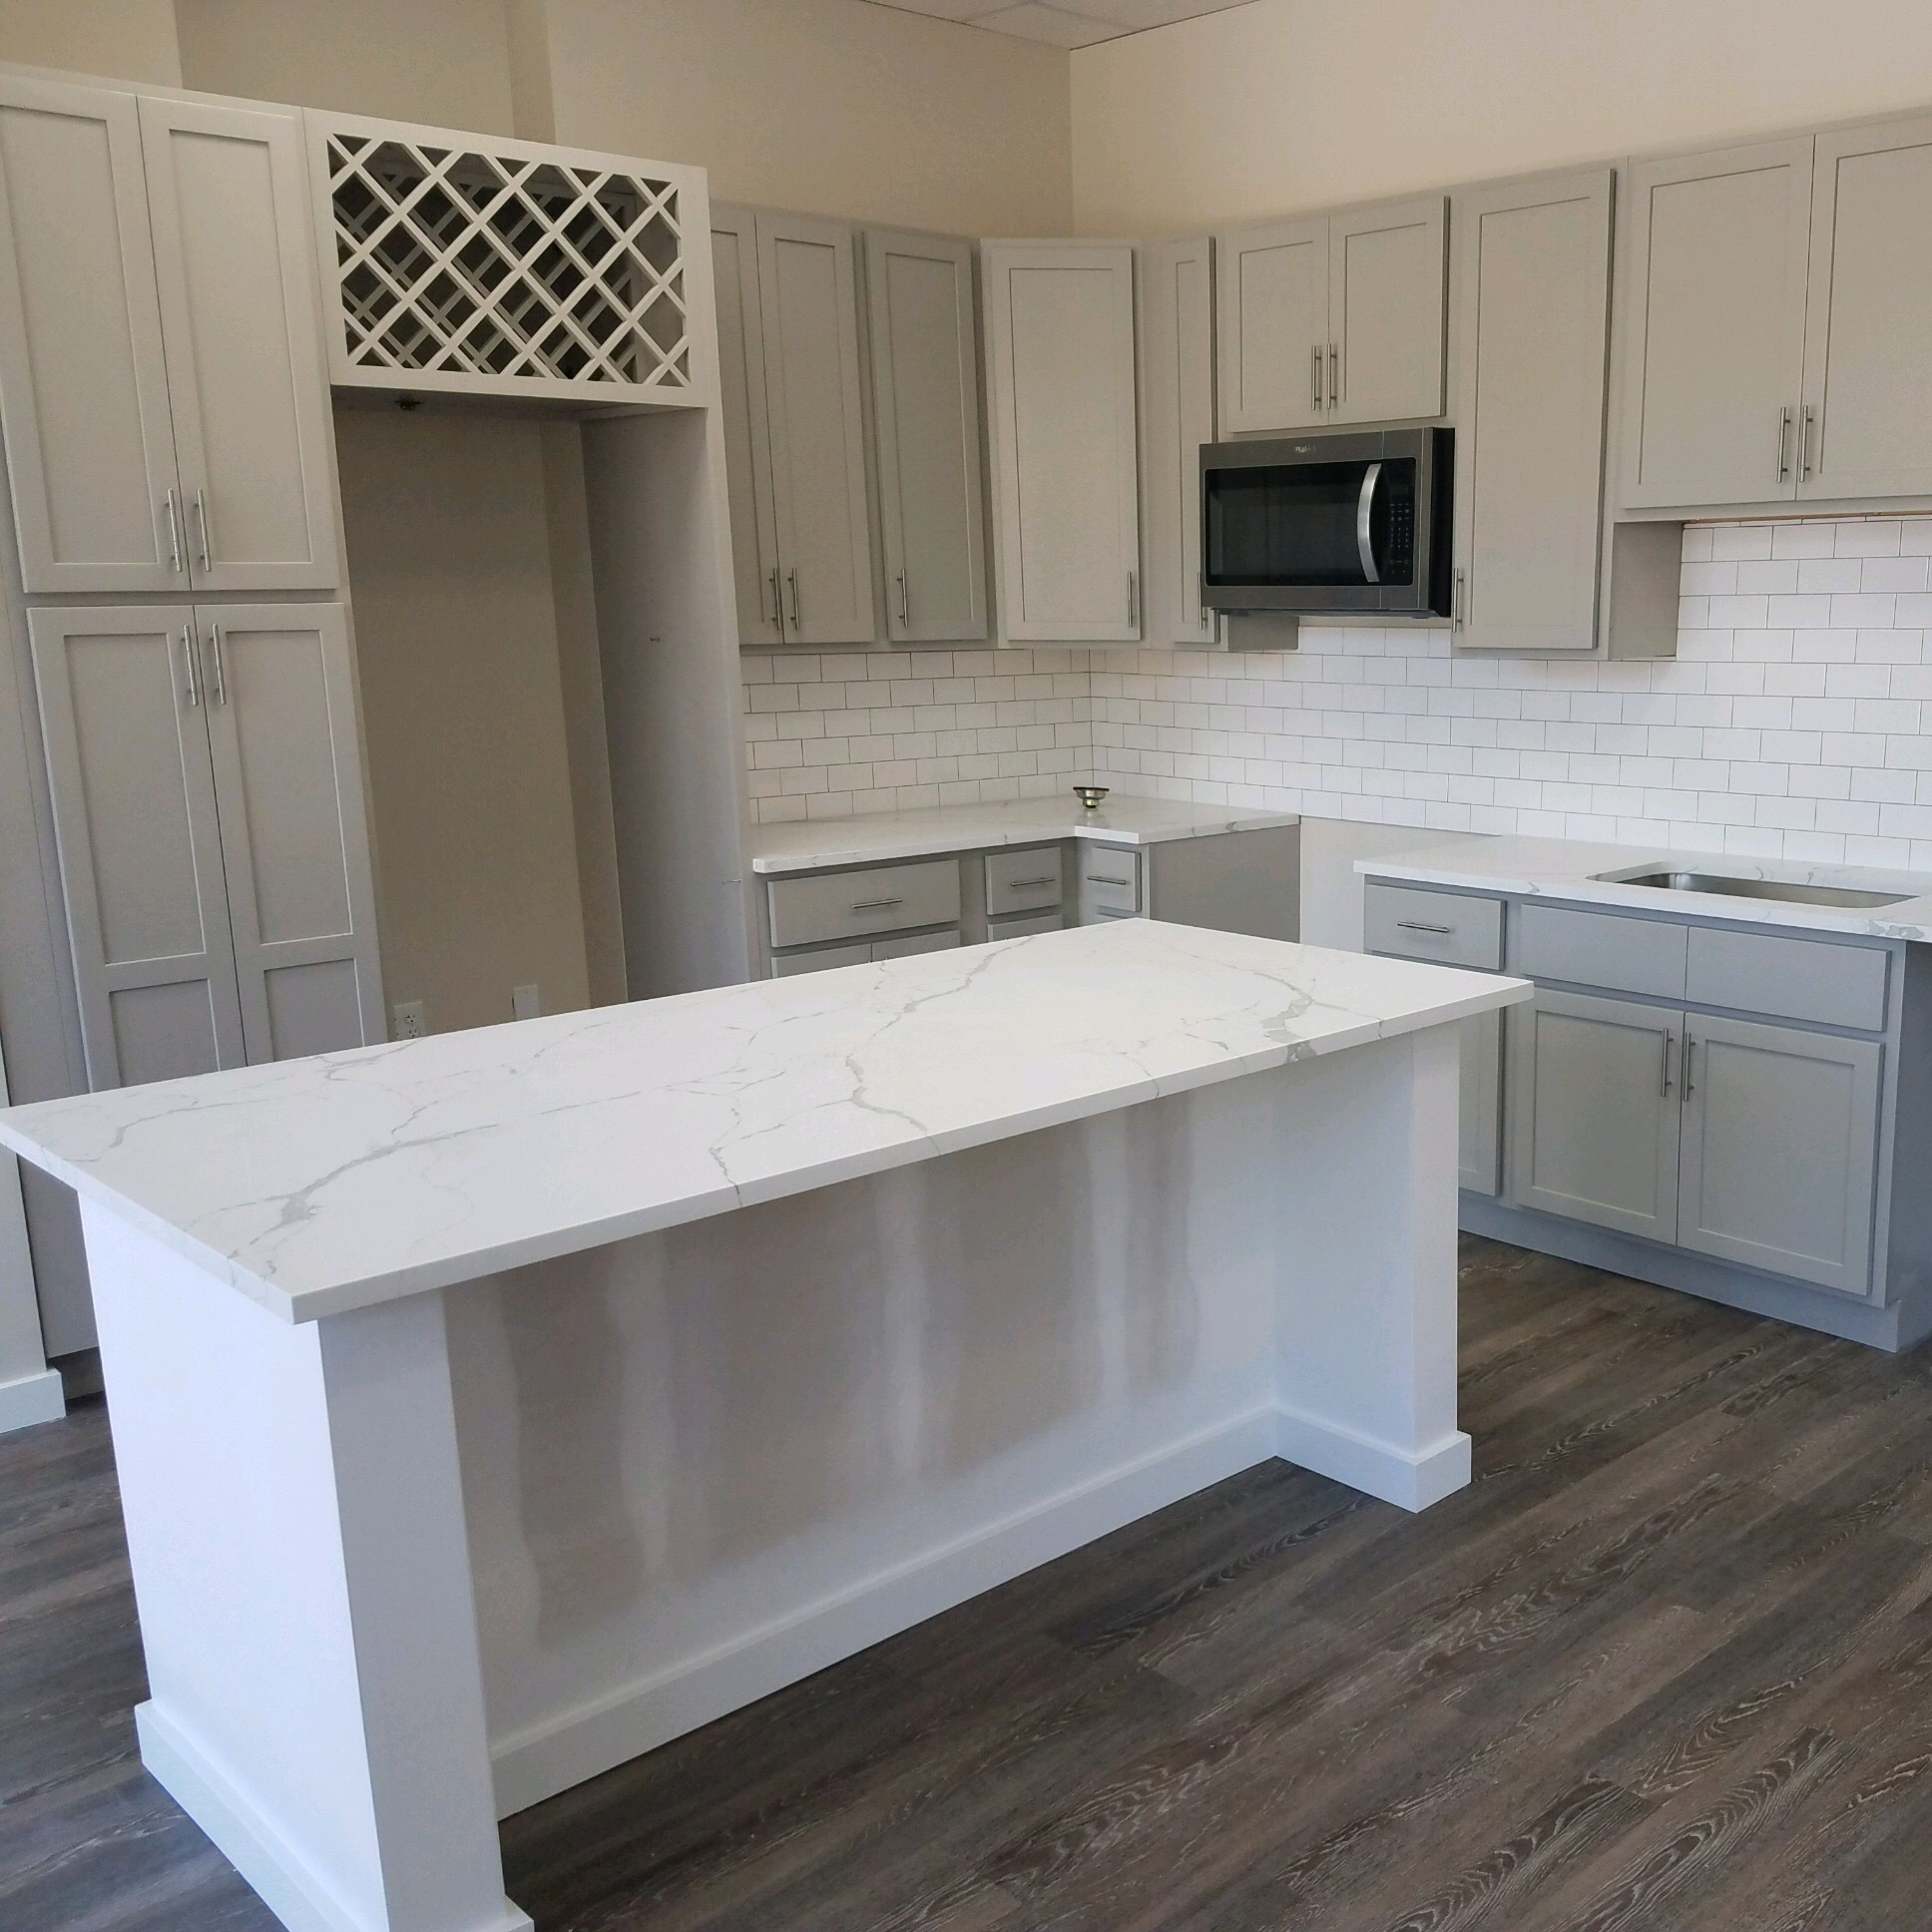 2019 Hot Sale Apartment Modern Kitchen Cabinets - Buy Mahogany Kitchen  Cabinets,Modern Kitchen Cabinets,Apartment Kitchen Cabinet Product on ...